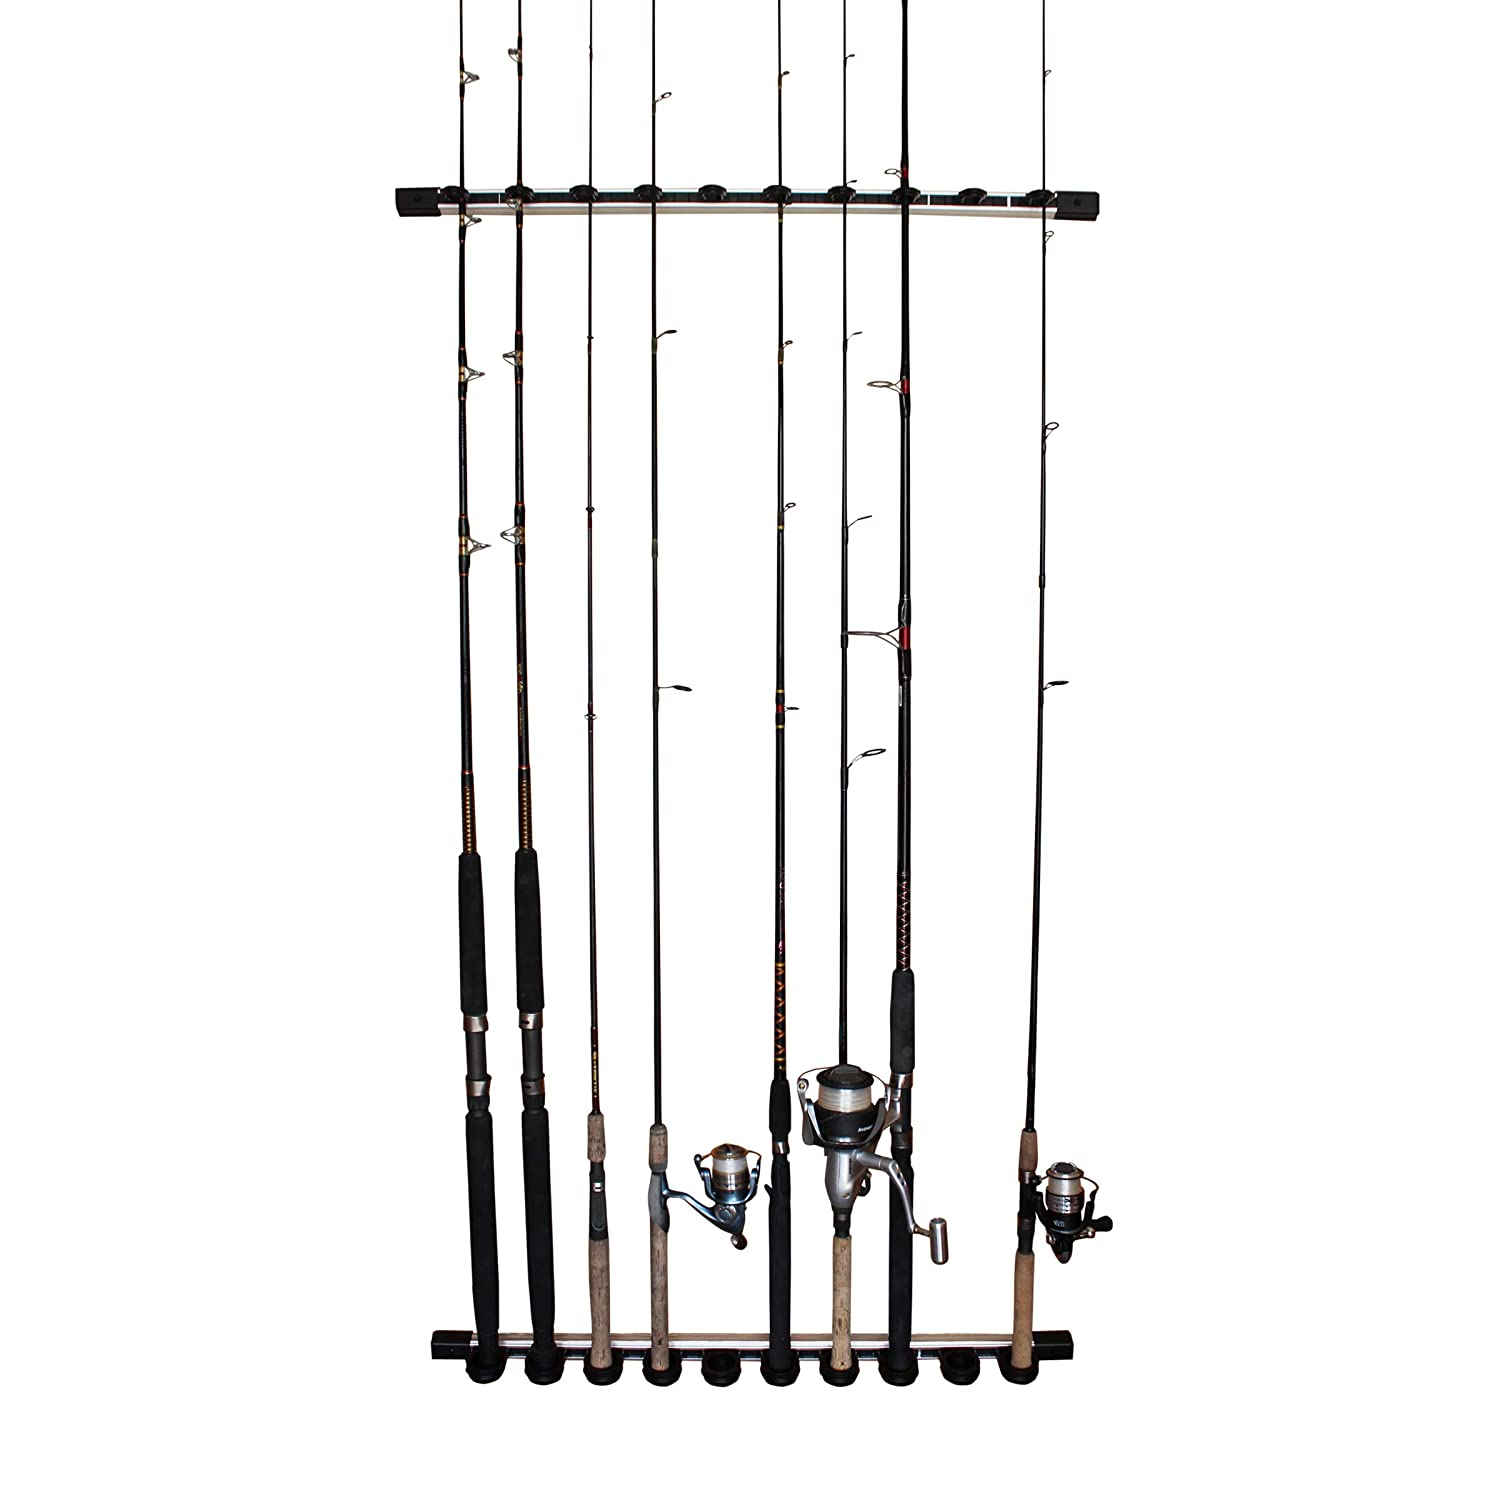 Rush Creek Creations 3 in 1 All Weather Fishing Rod Pole Storage Wall Ceiling Rack